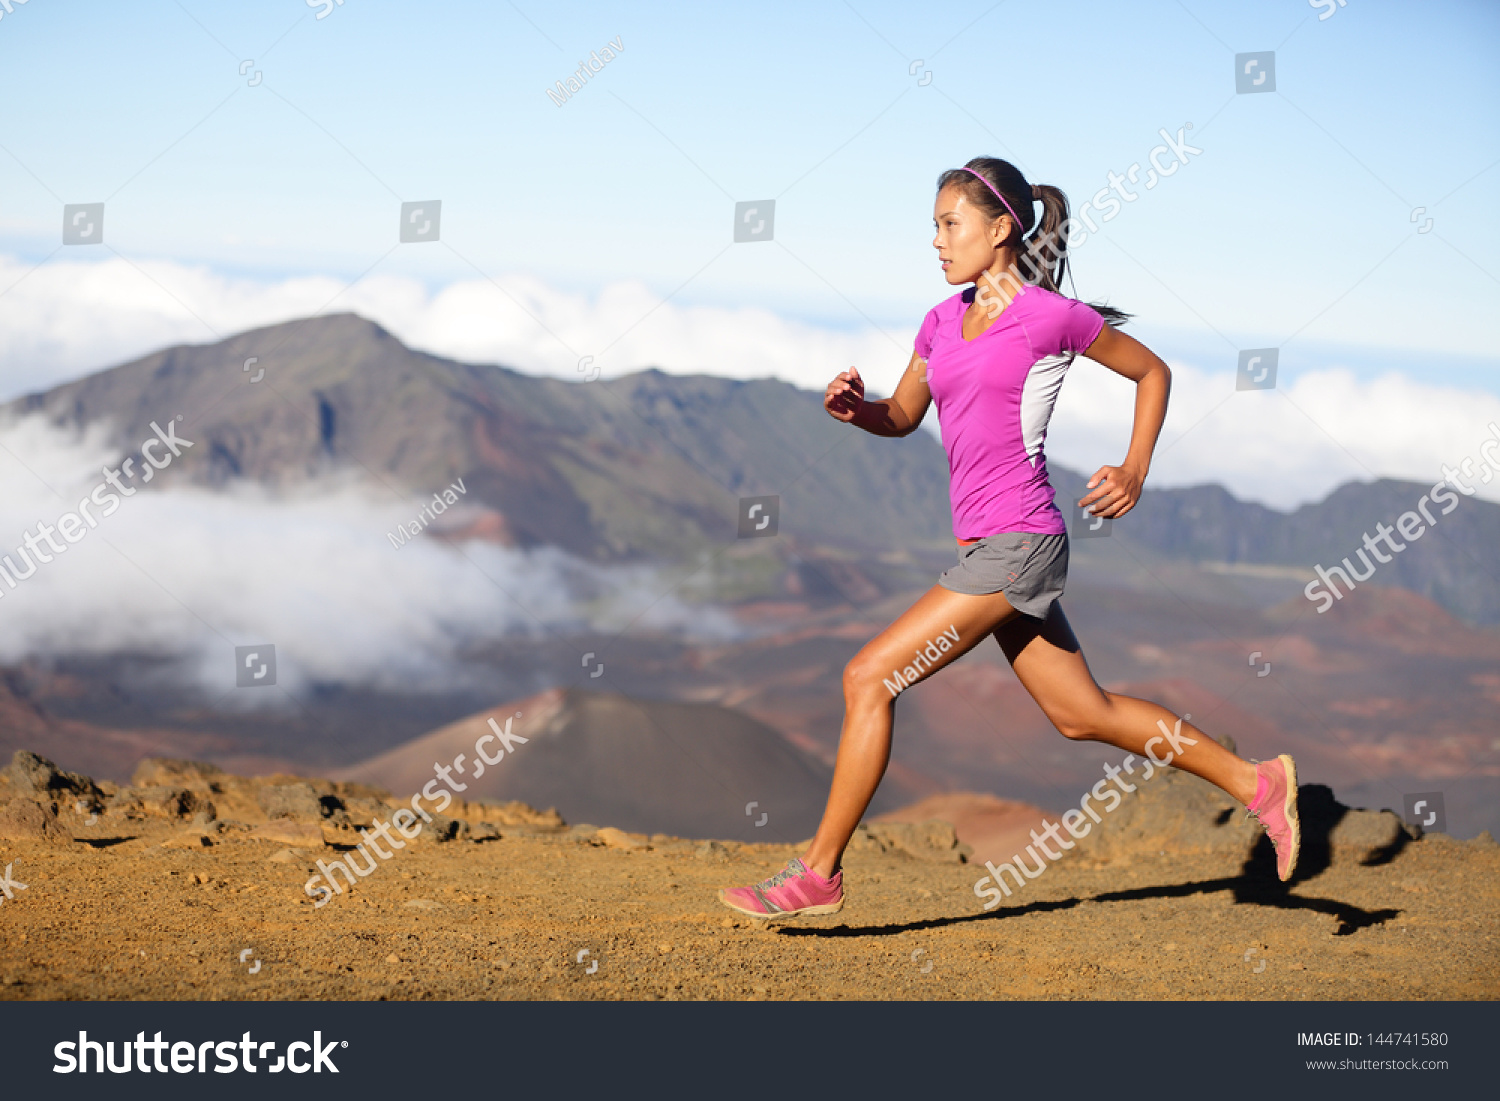 Female Running Athlete Woman Trail Runner Stock Photo ...